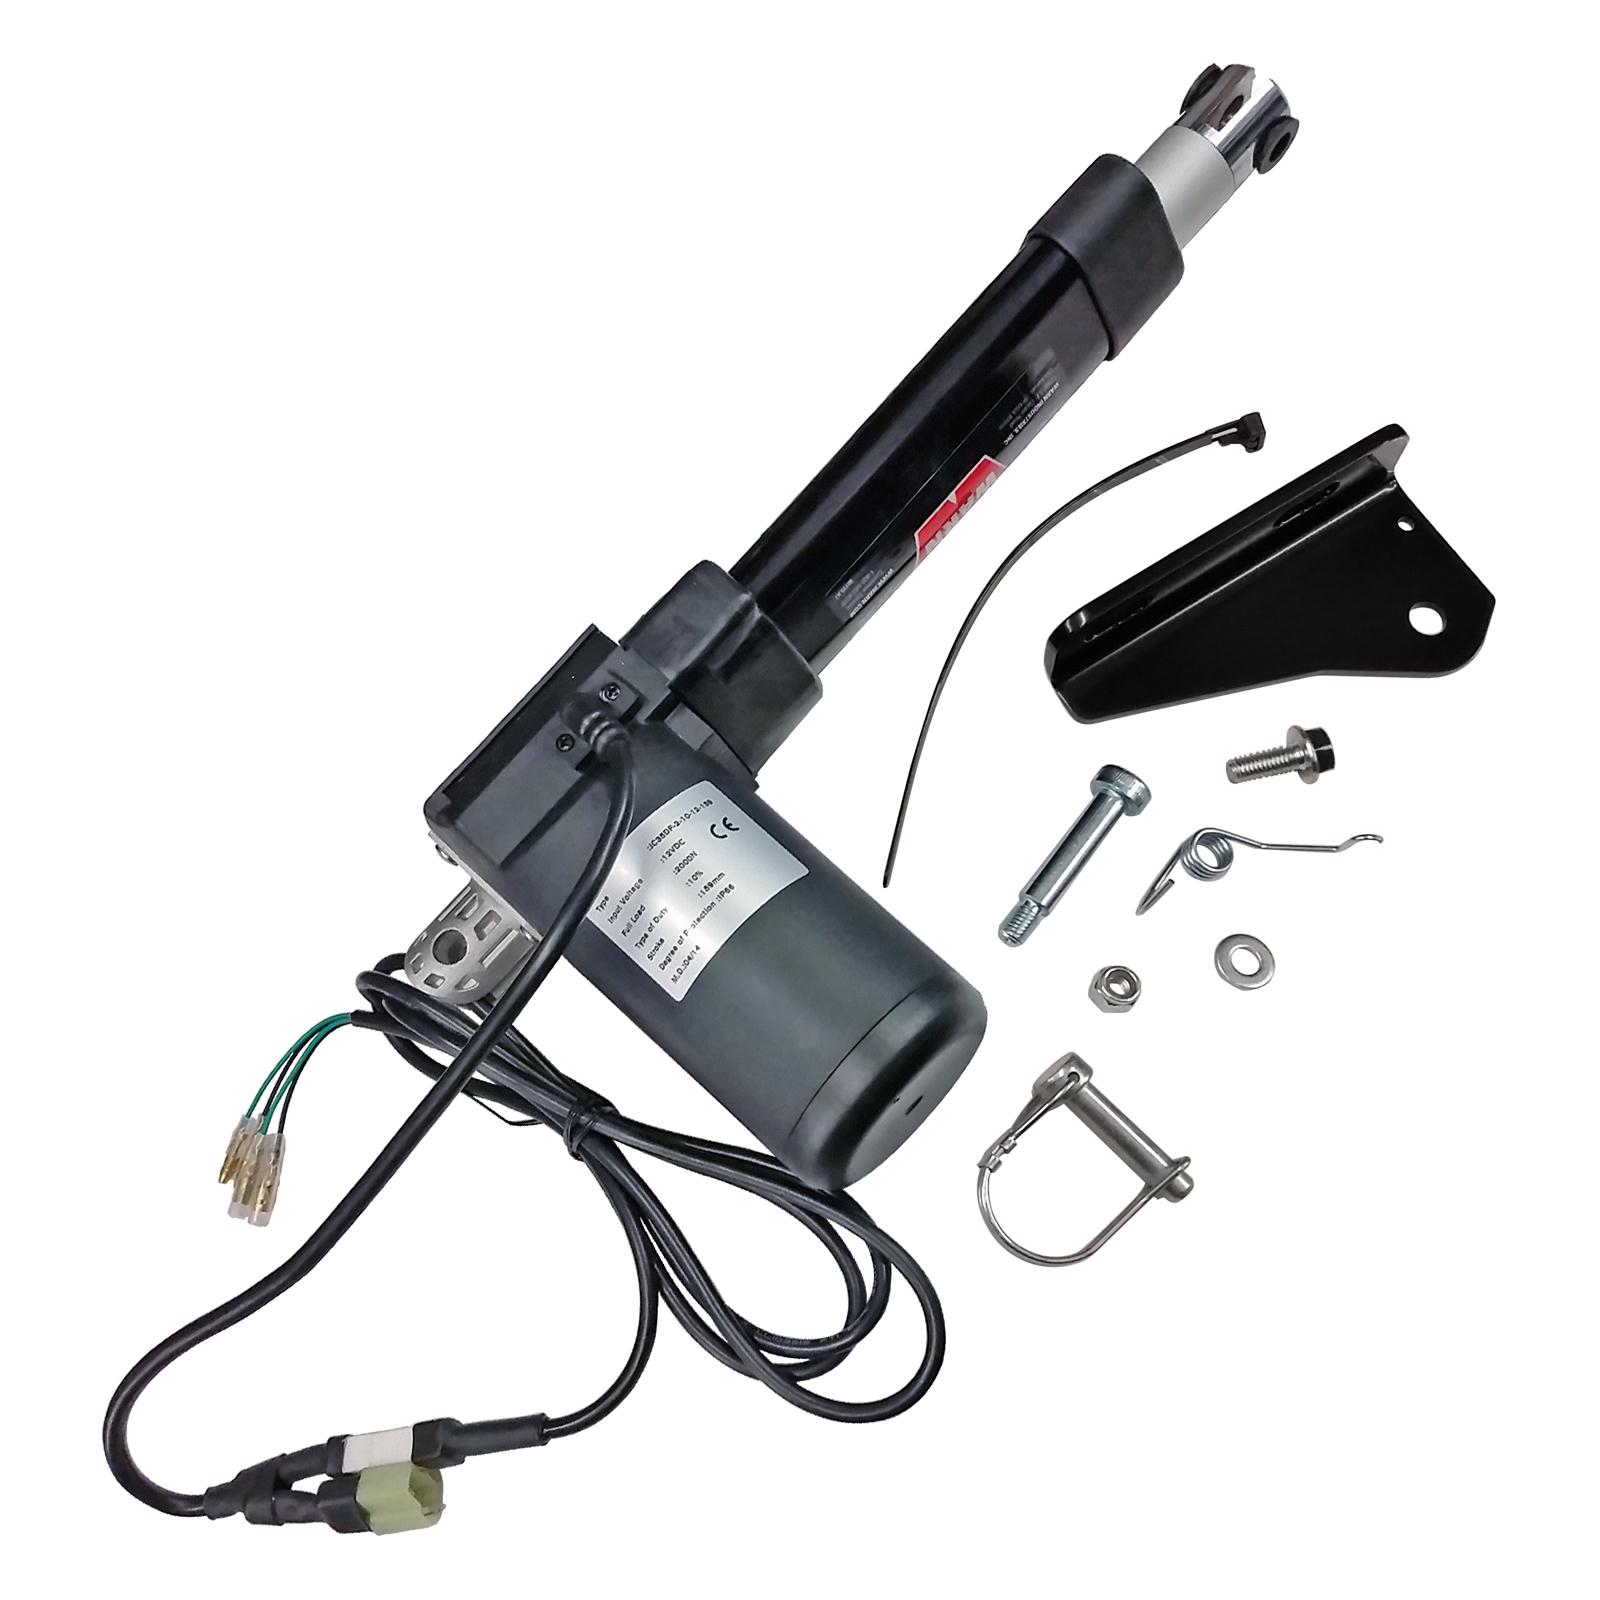 Warn Plow Lift Replacement Electric Each Ebay